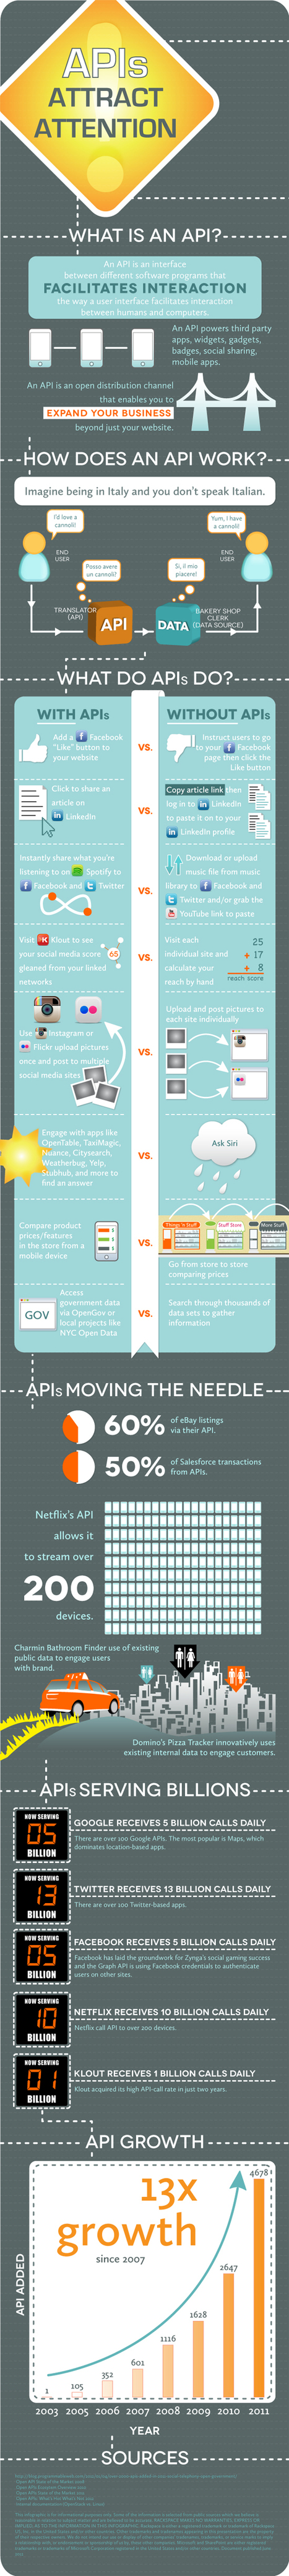 23 Fun Facts About APIs [Infographic] | Beyond Marketing | Scoop.it